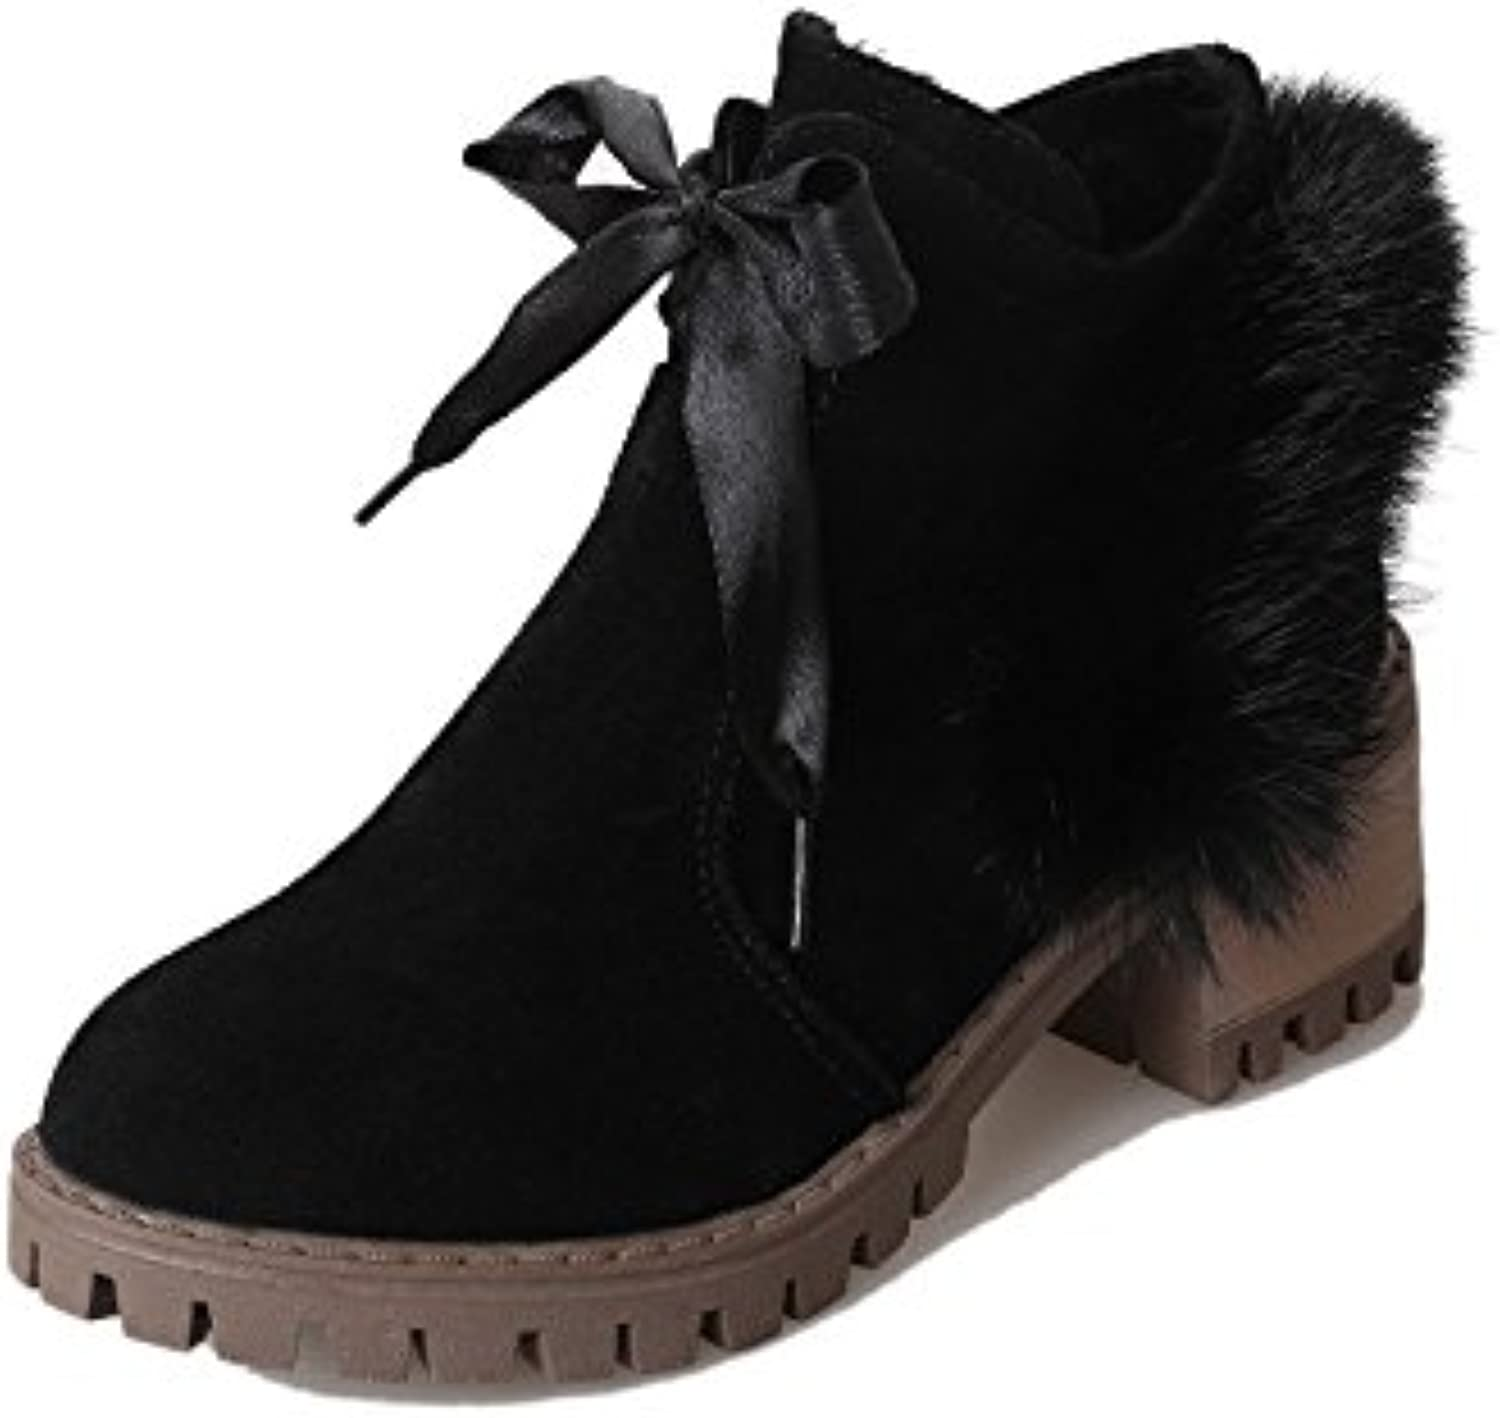 WYMBS Women's shoes Rough Keep Warm Low-Heeled Non-Slip Rubber Short Boots,Black,40